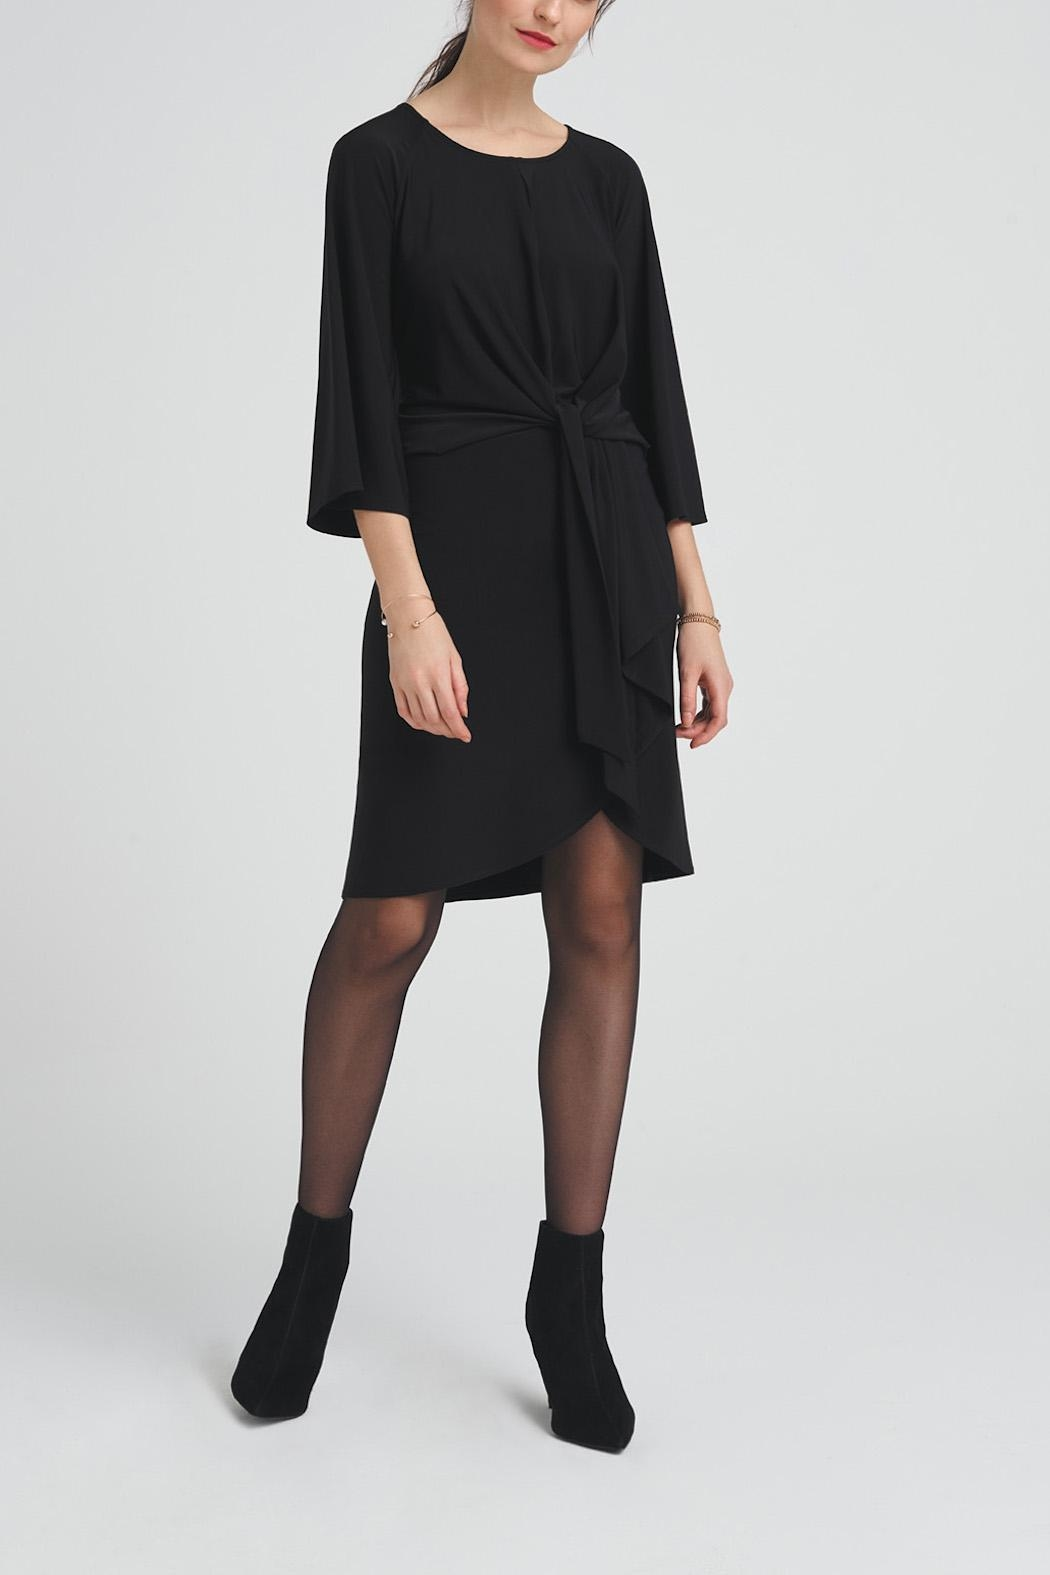 Tribal Front Tie Dress - Main Image